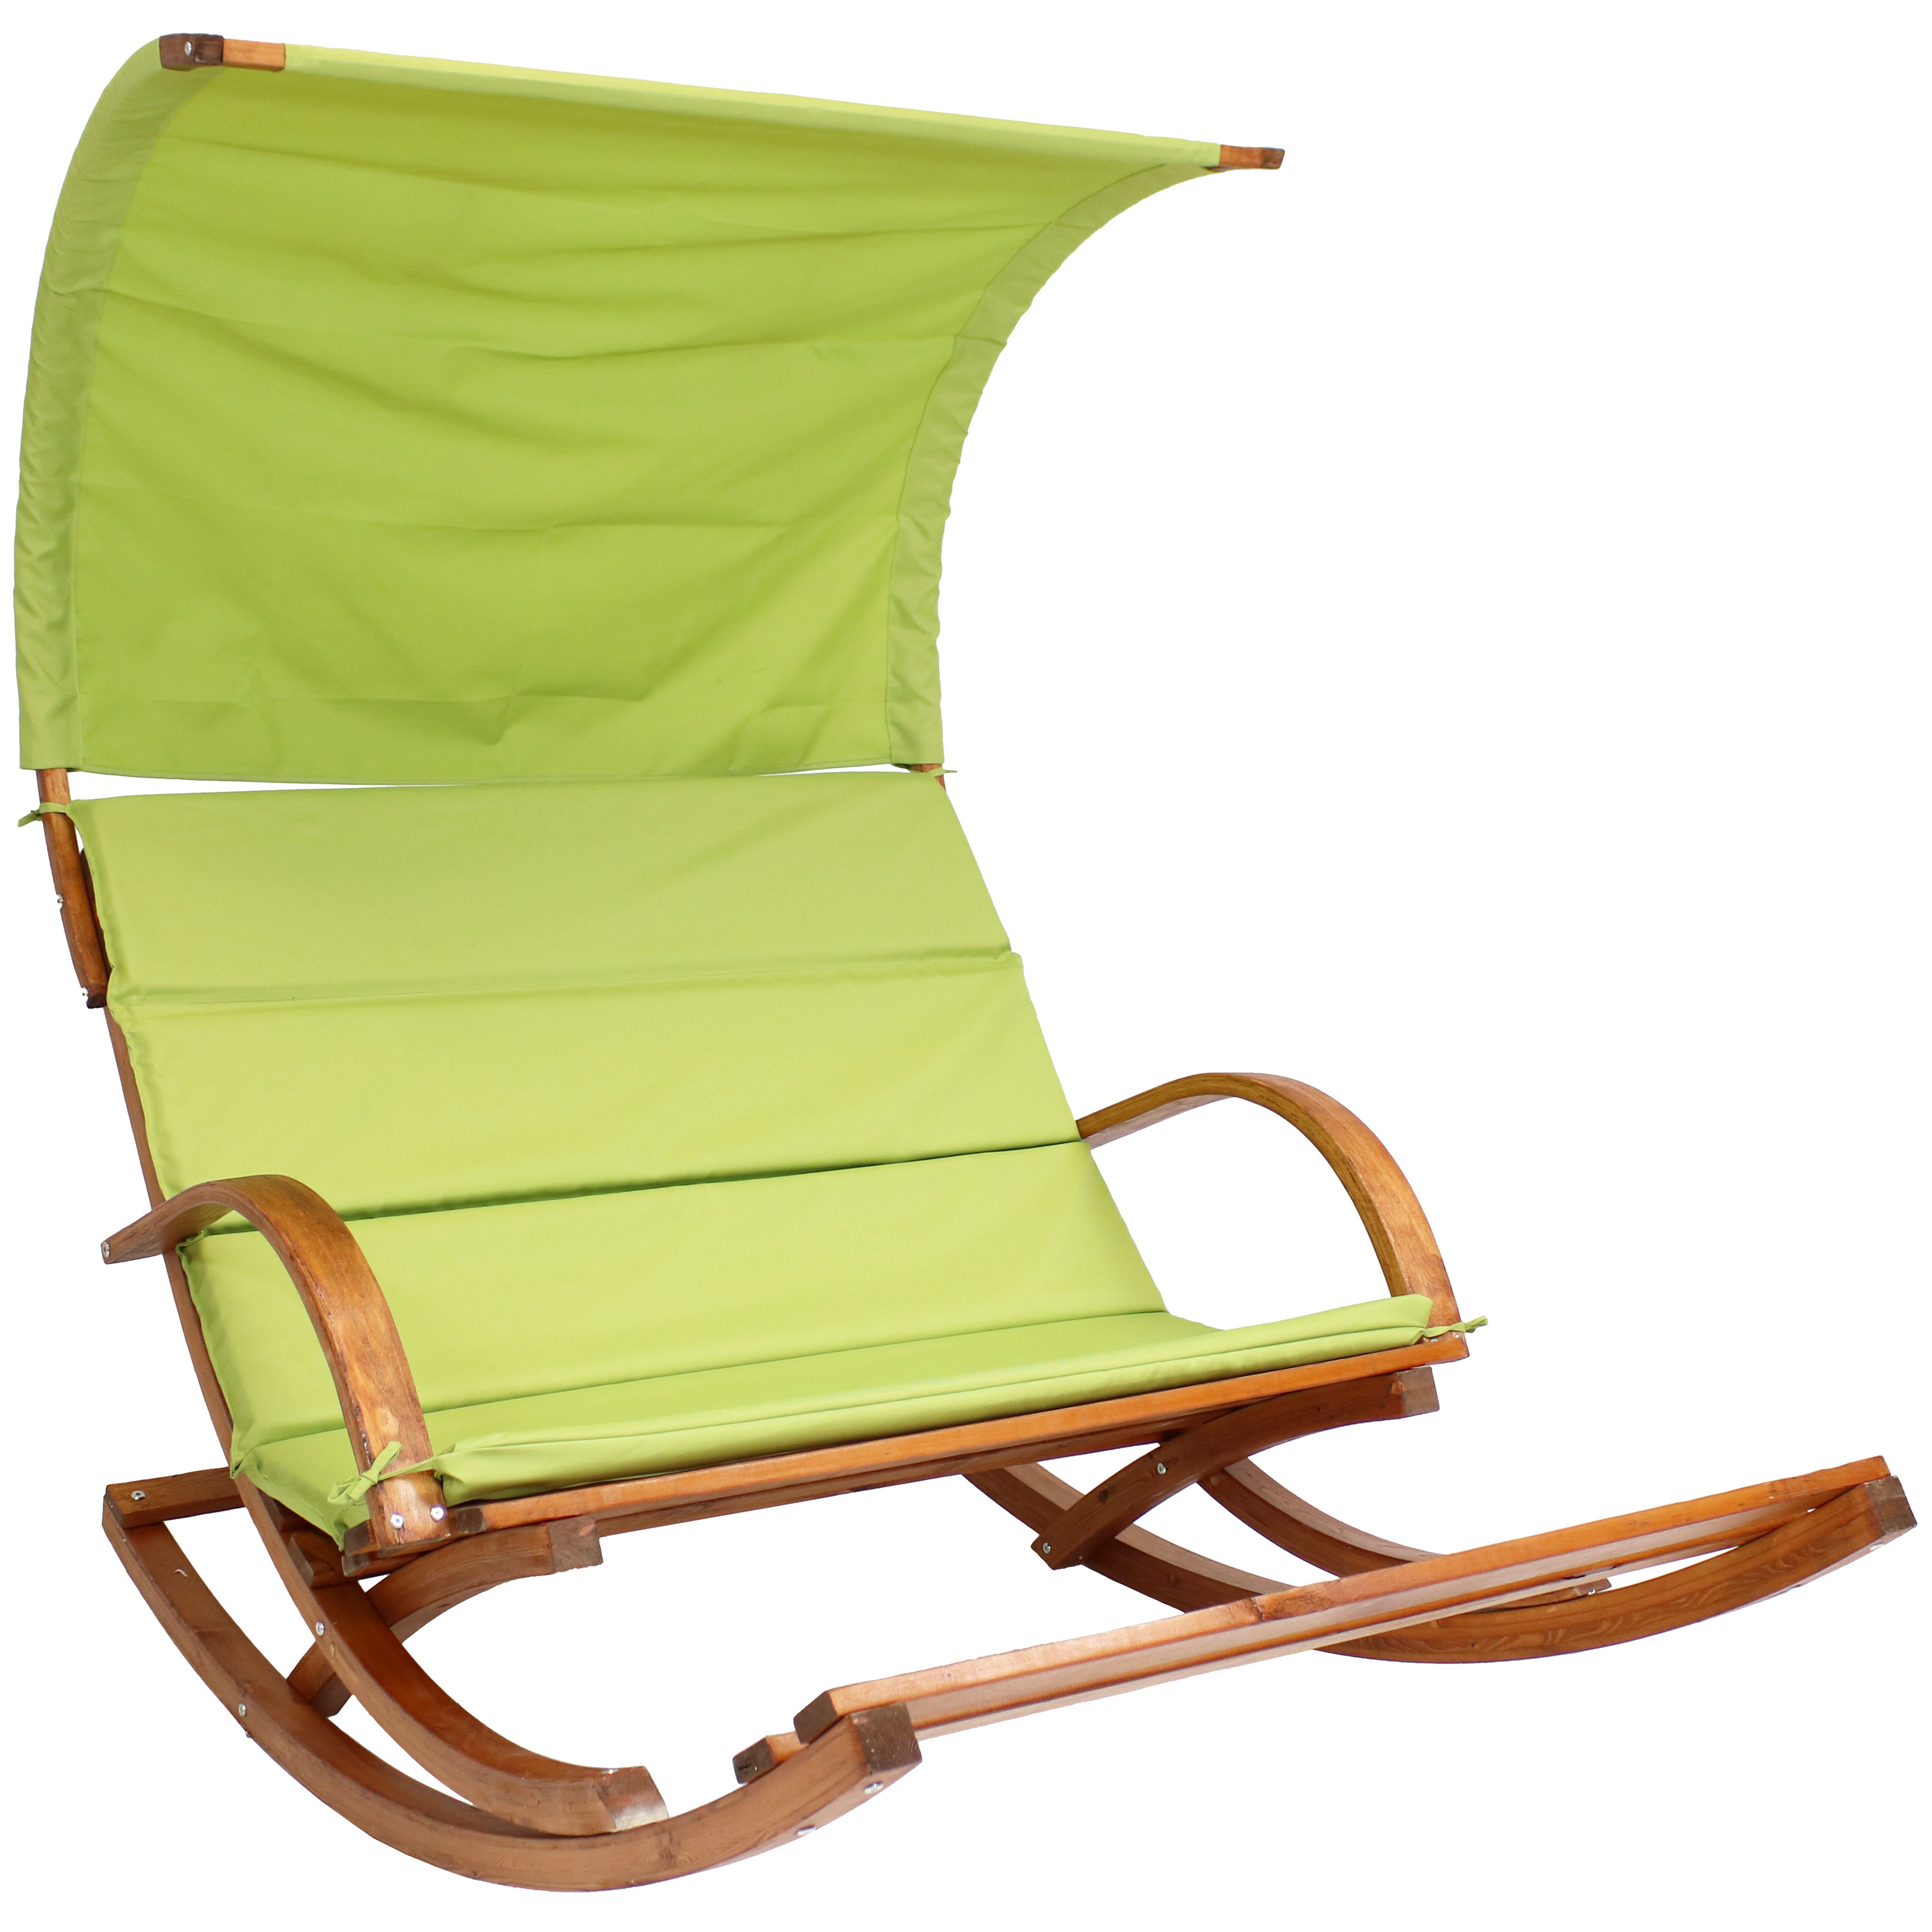 Wooden Rocking Cushioned Loveseat Rest Canopy Lime Green Photo